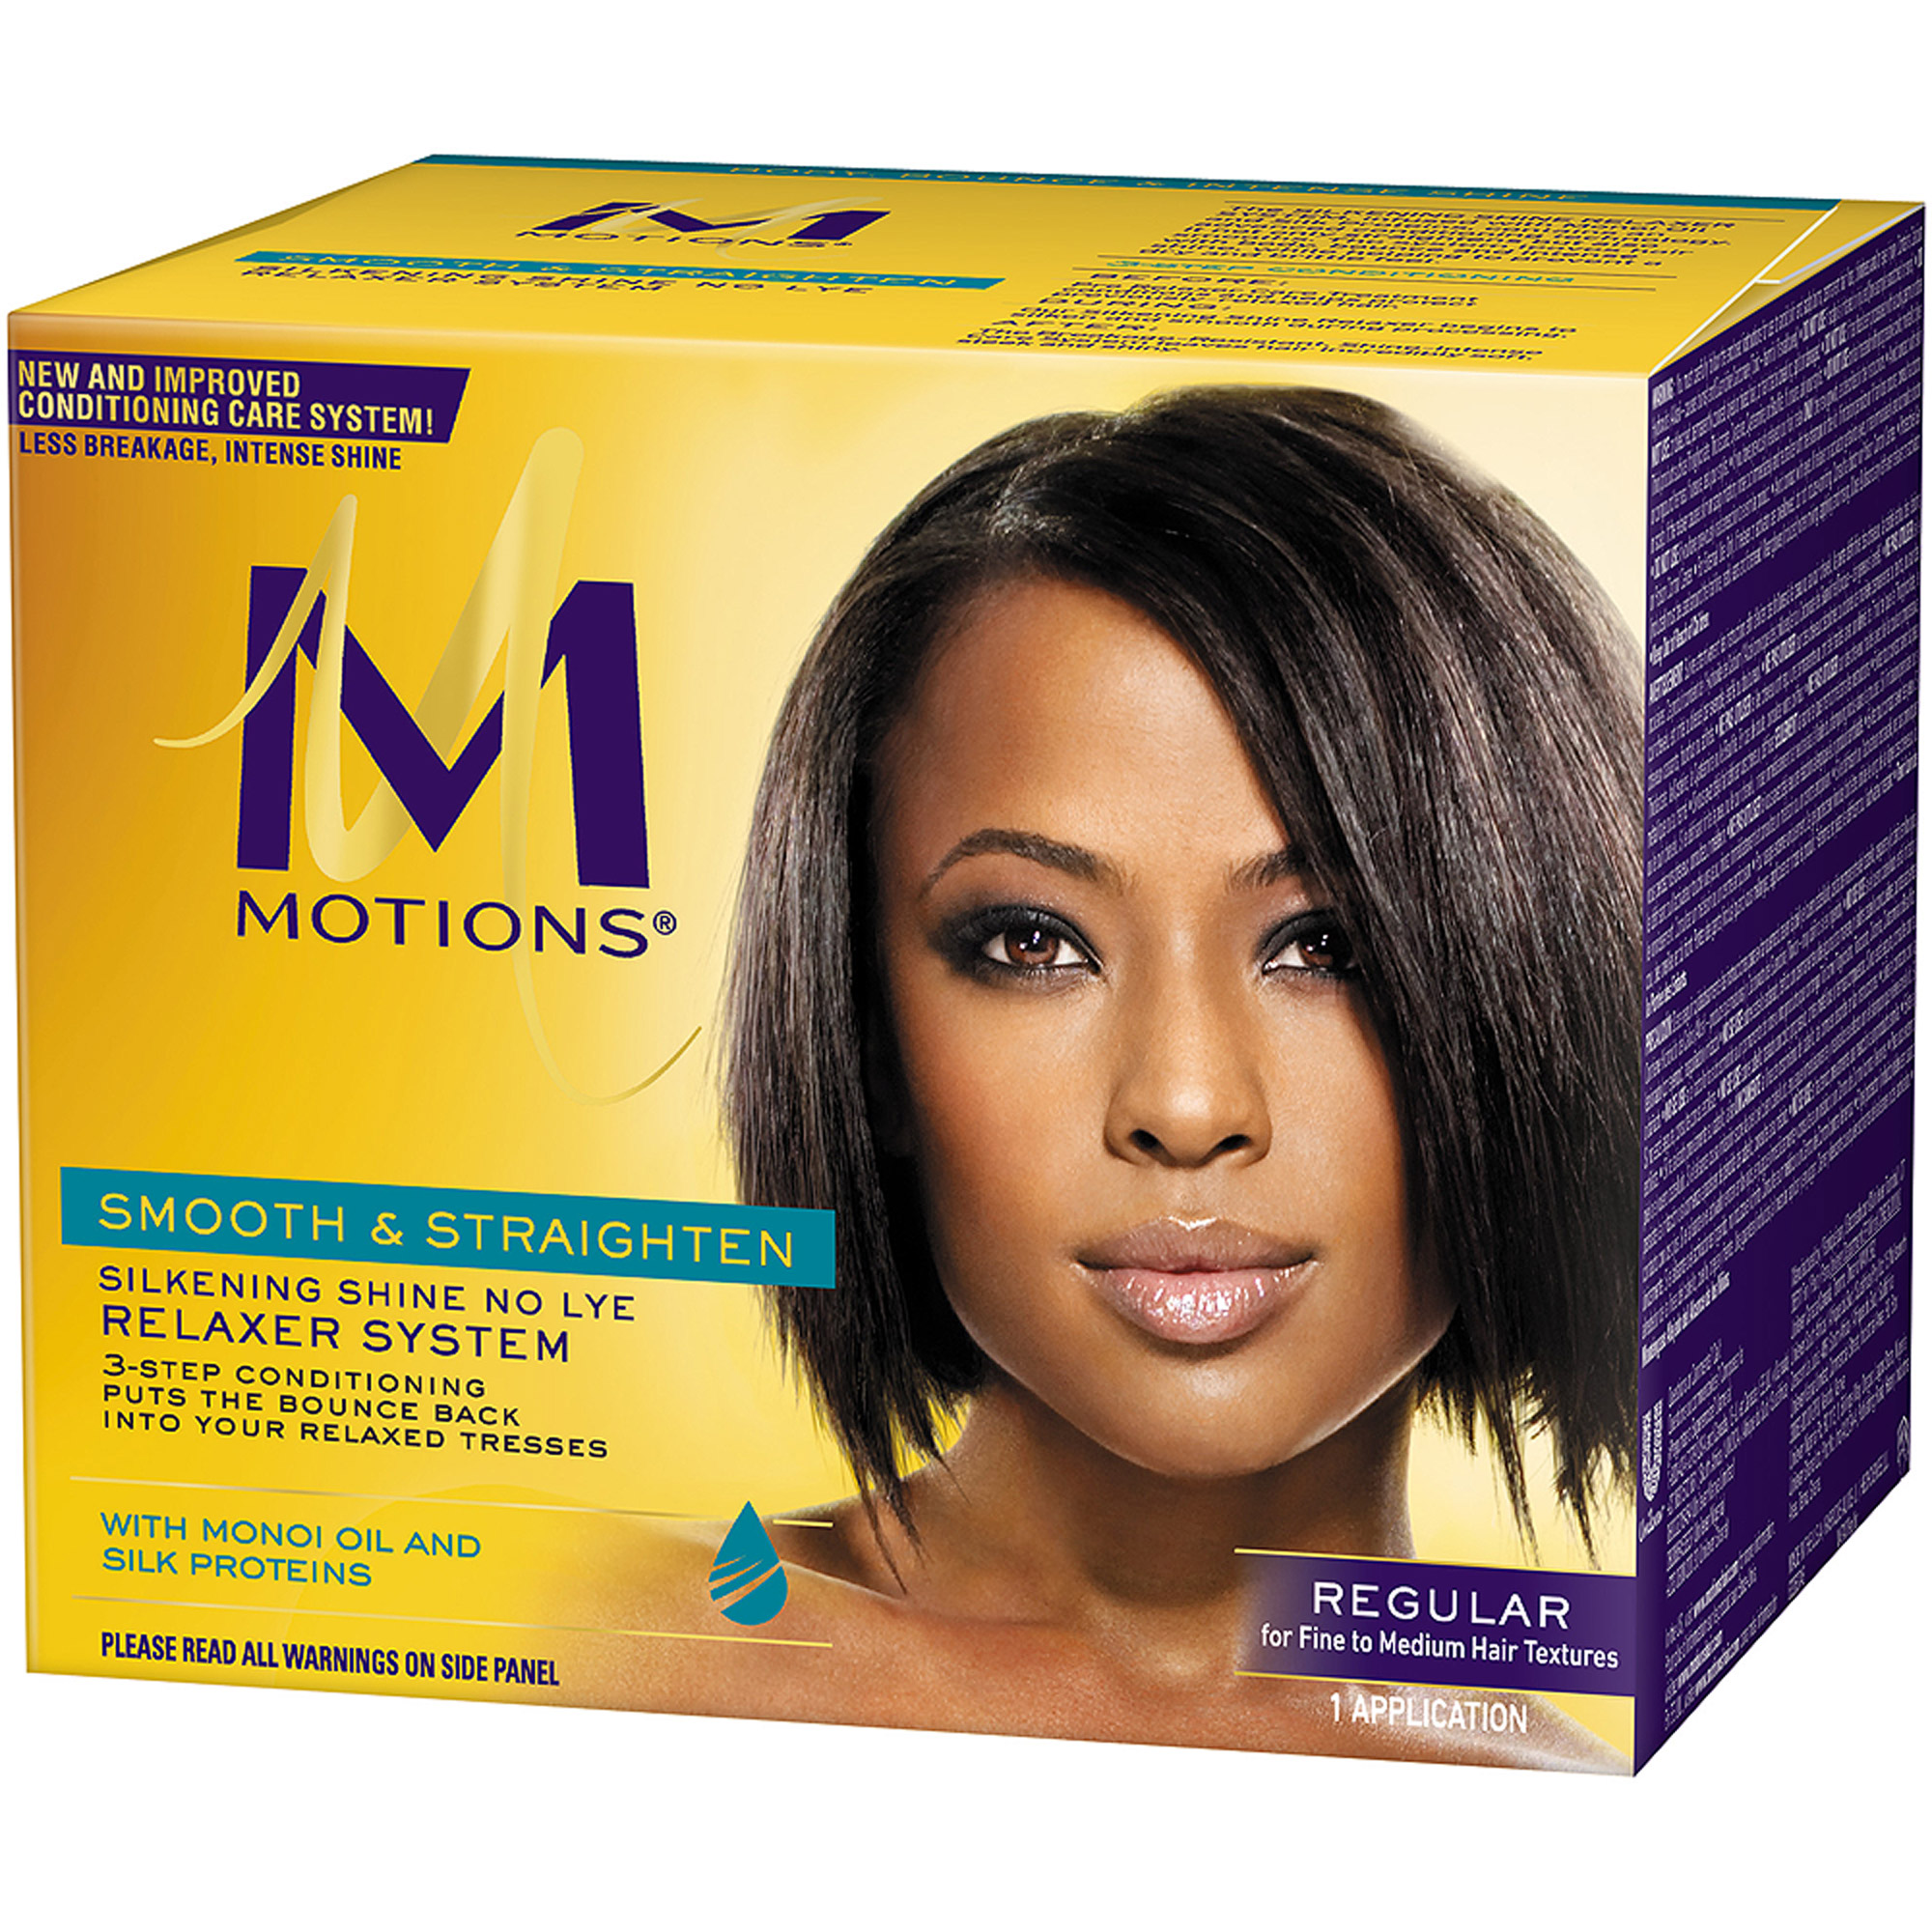 Motions Smooth and Straighten Regular No Lye Relaxer System